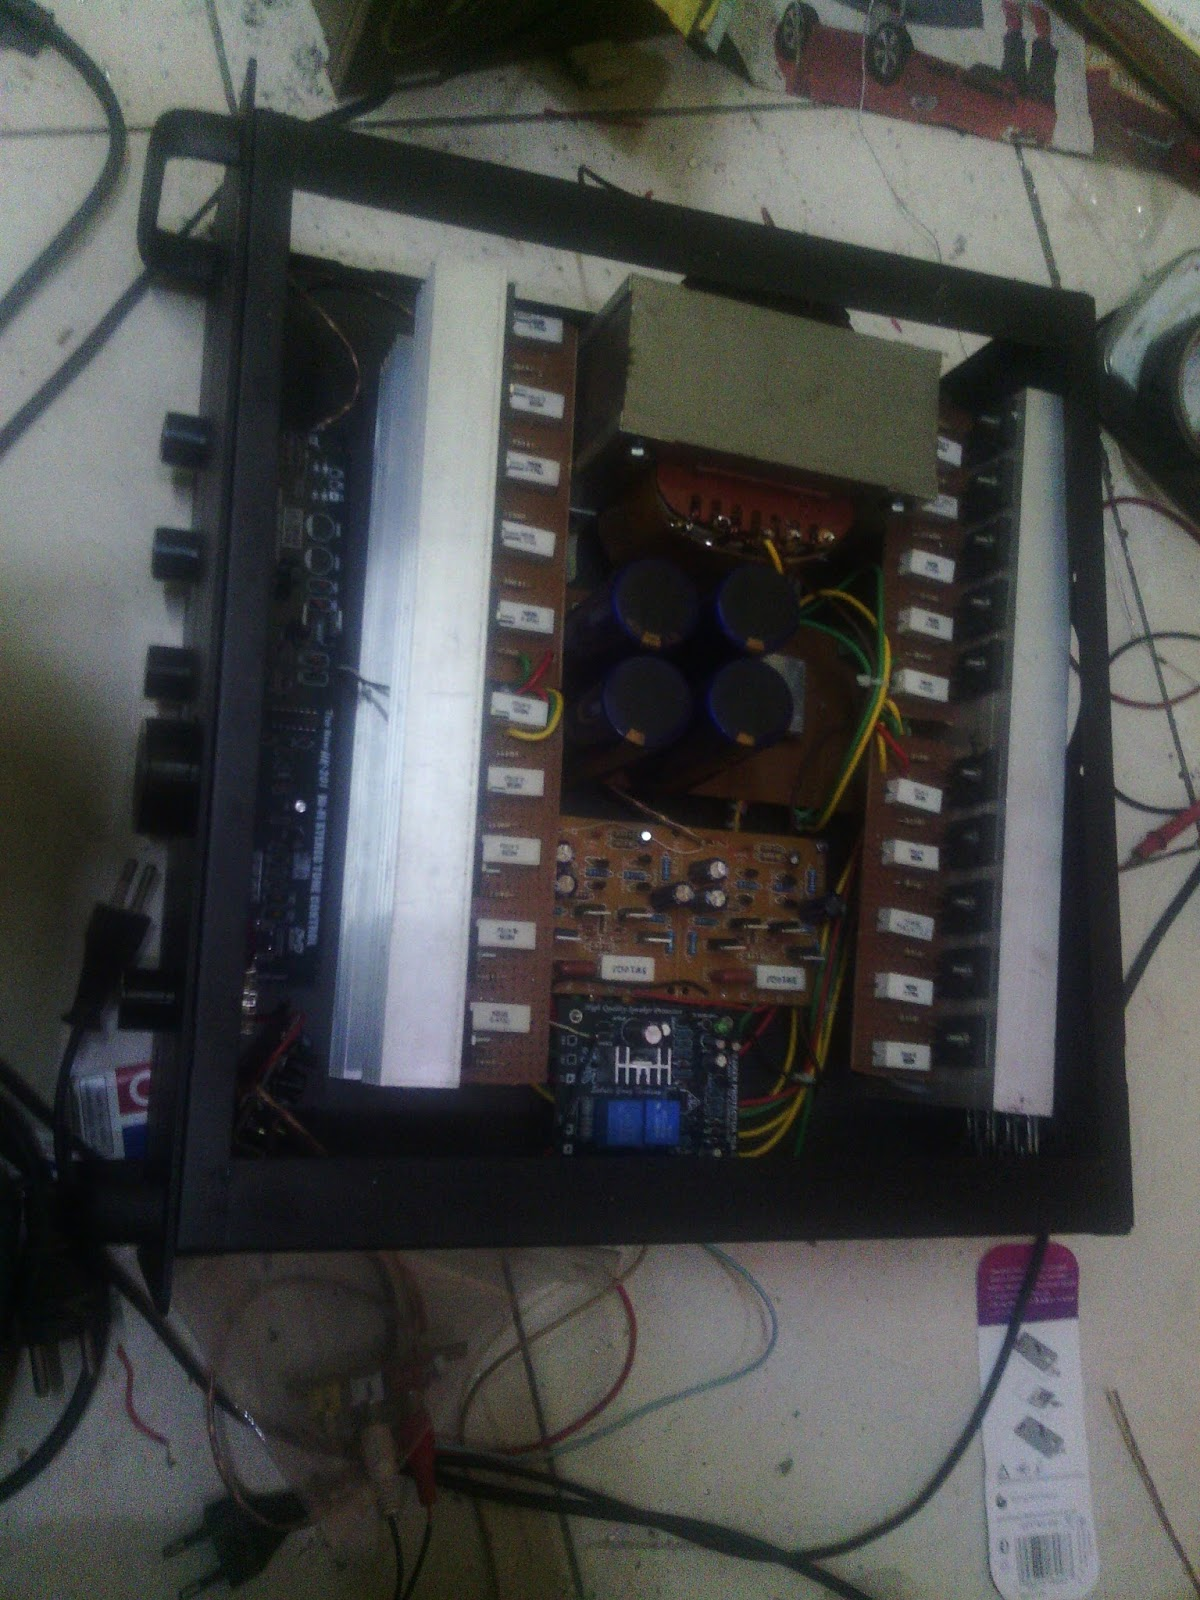 CARA MEMBUAT POWER AMP 1000 WATT HASIL DI ATAS POWER BUILT UP